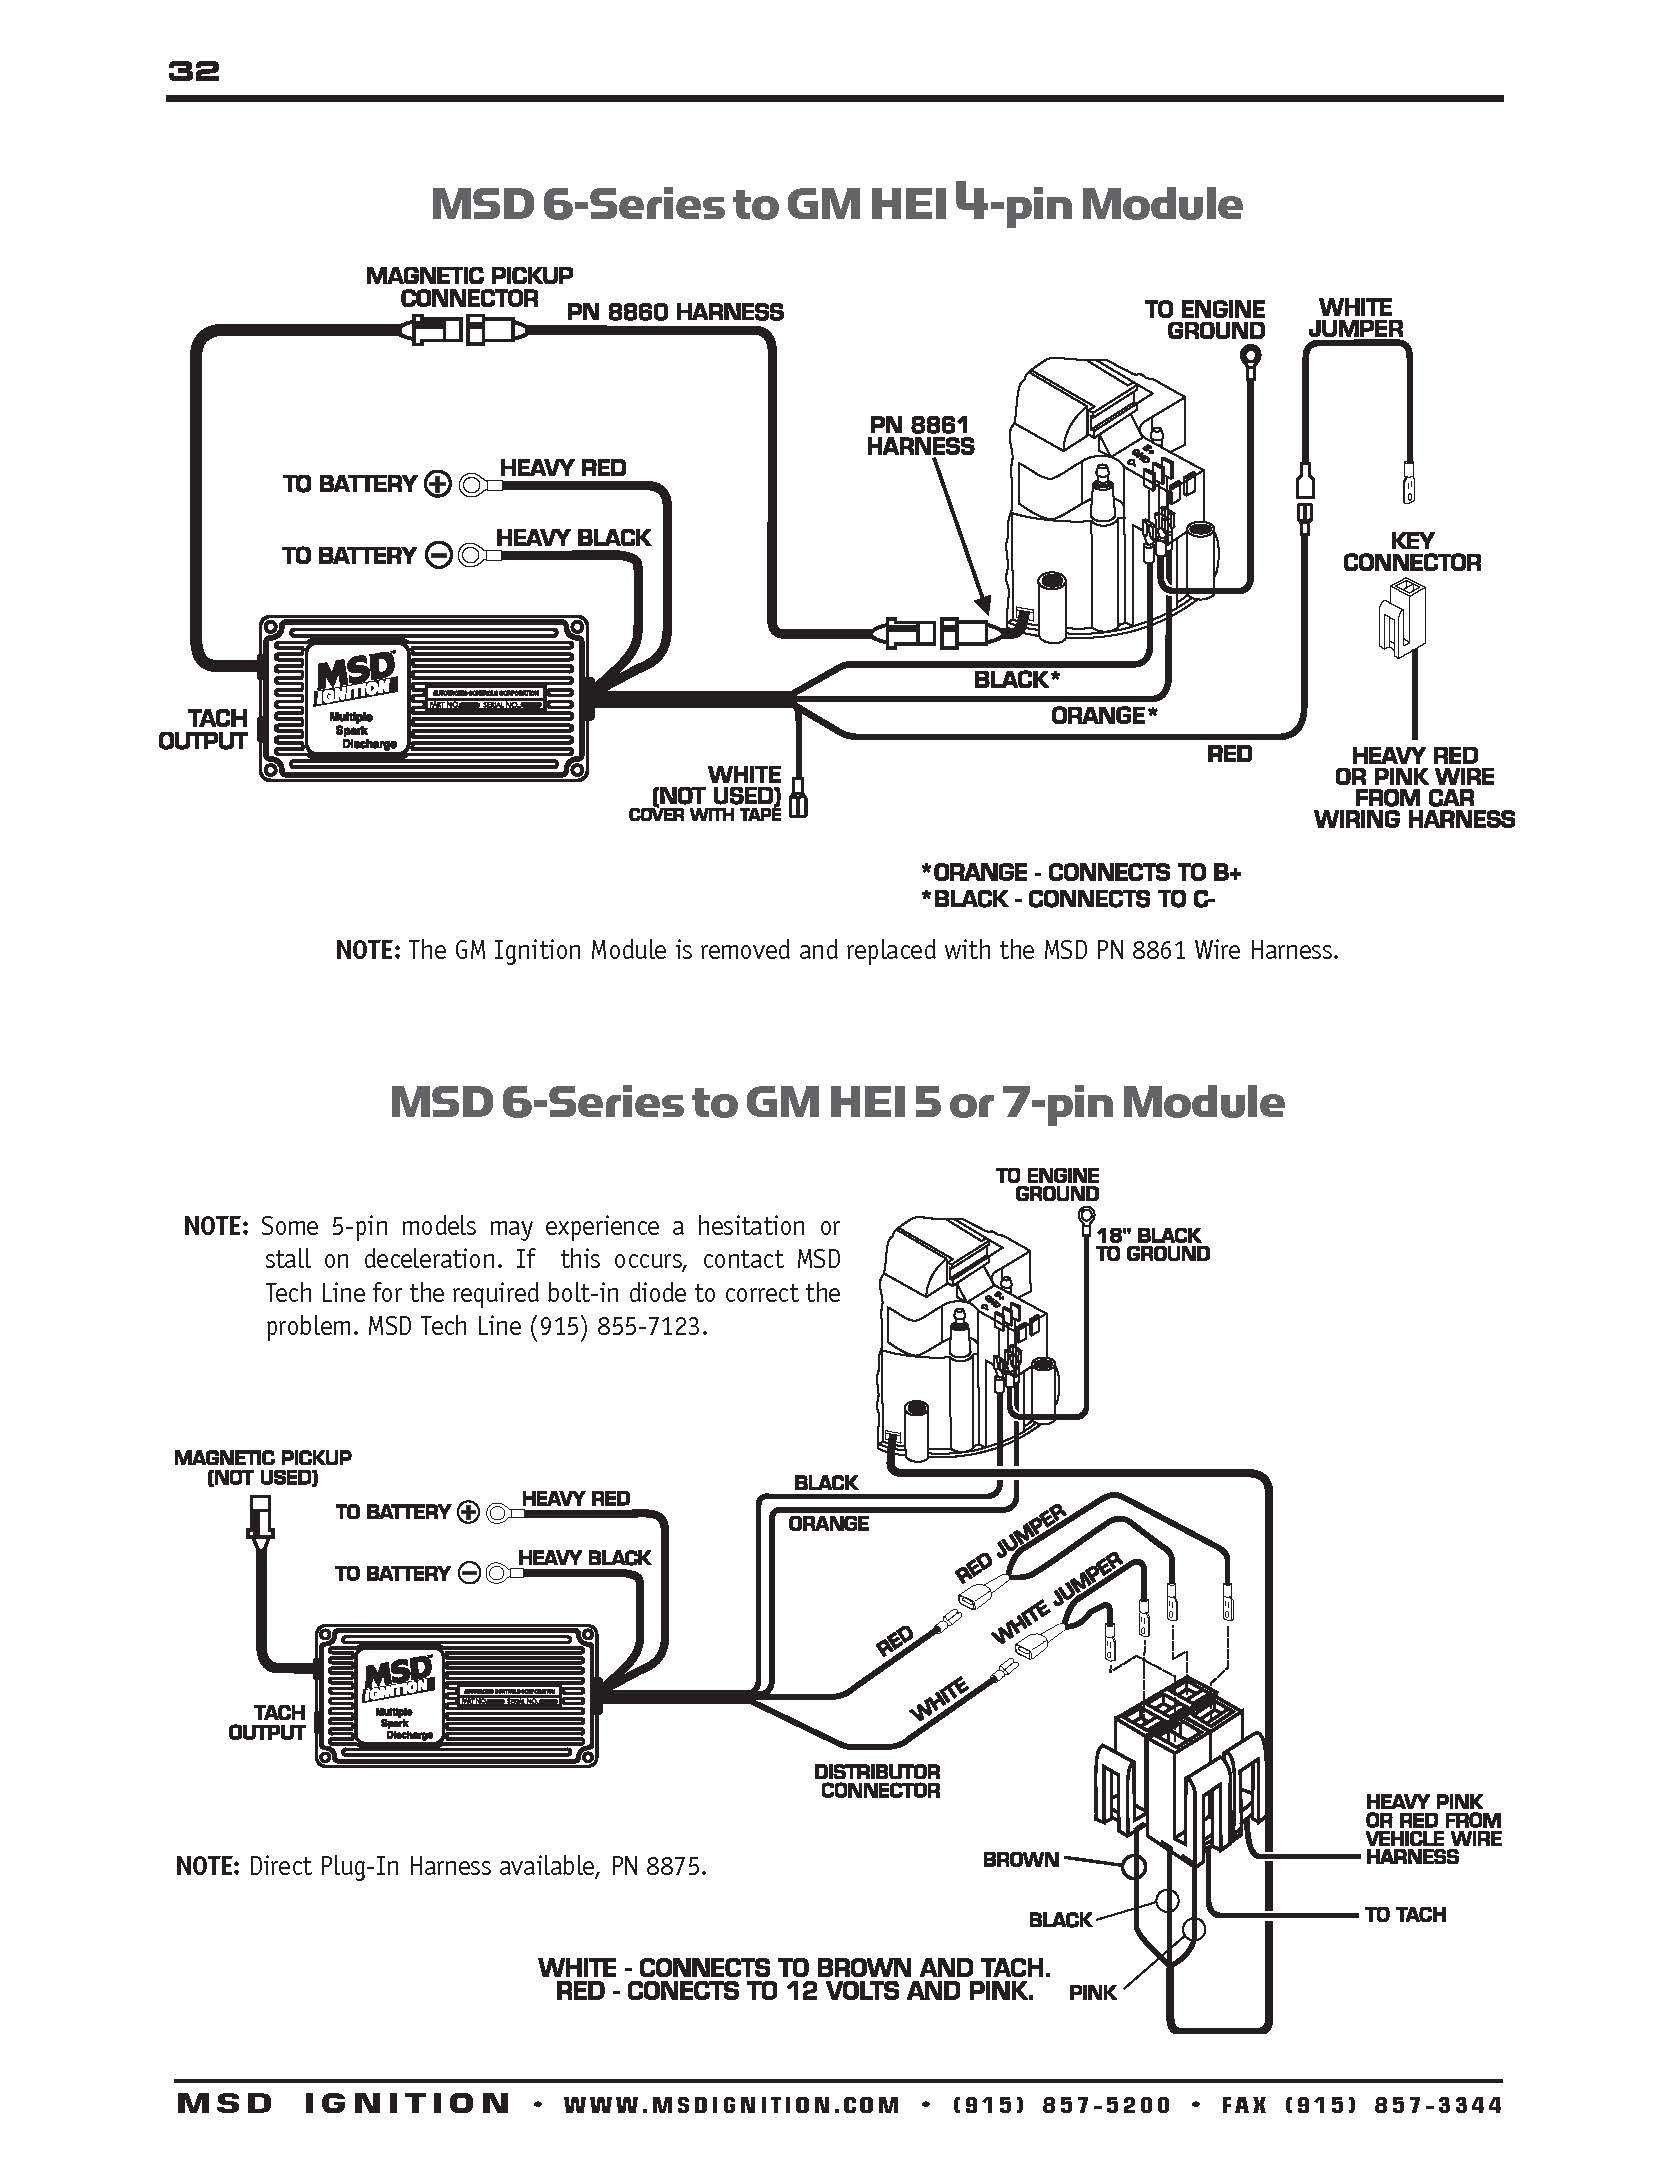 msd 6al 2 wiring diagram for a 4 way light switch saima soomro part number 6420 gallery